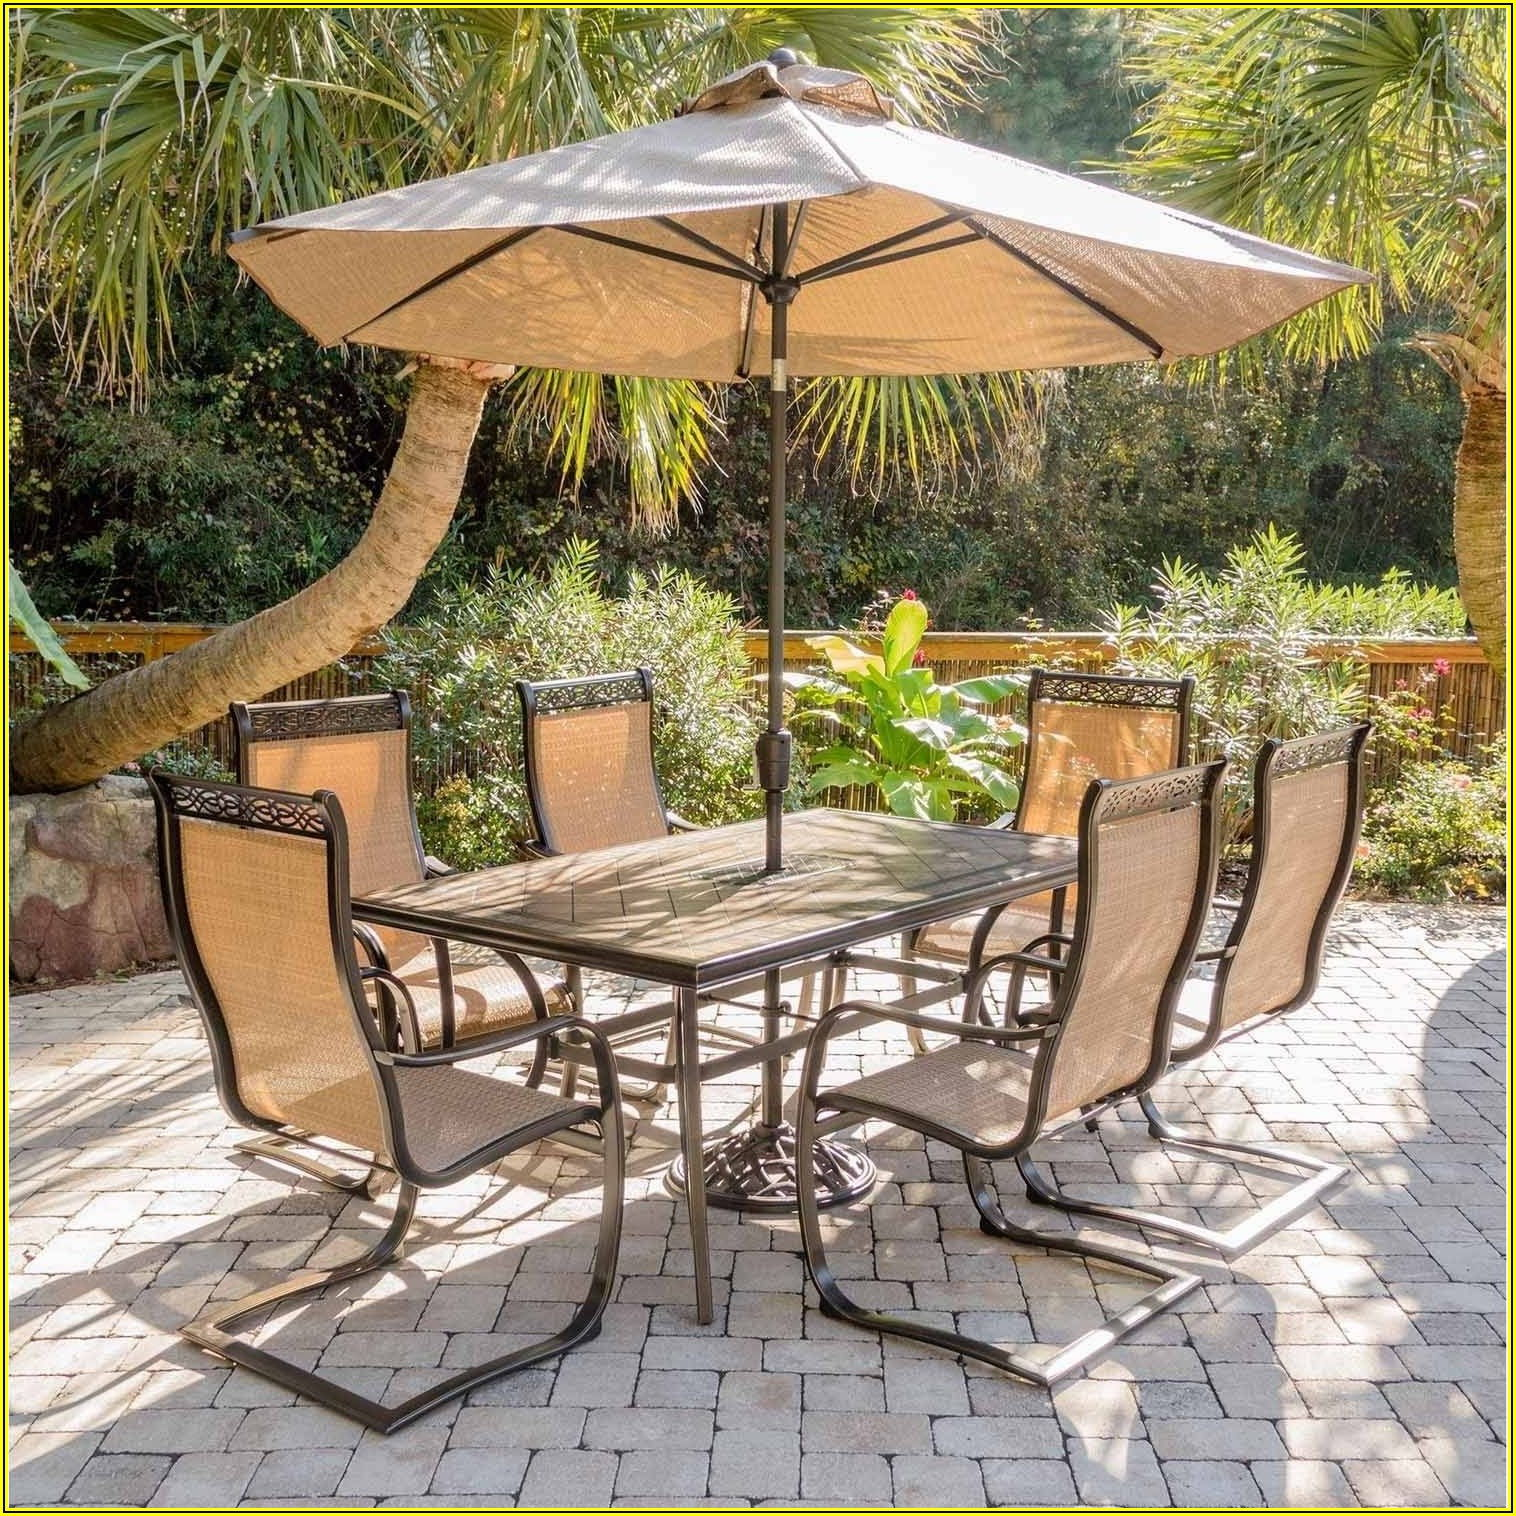 Hanover Monaco Patio Furniture